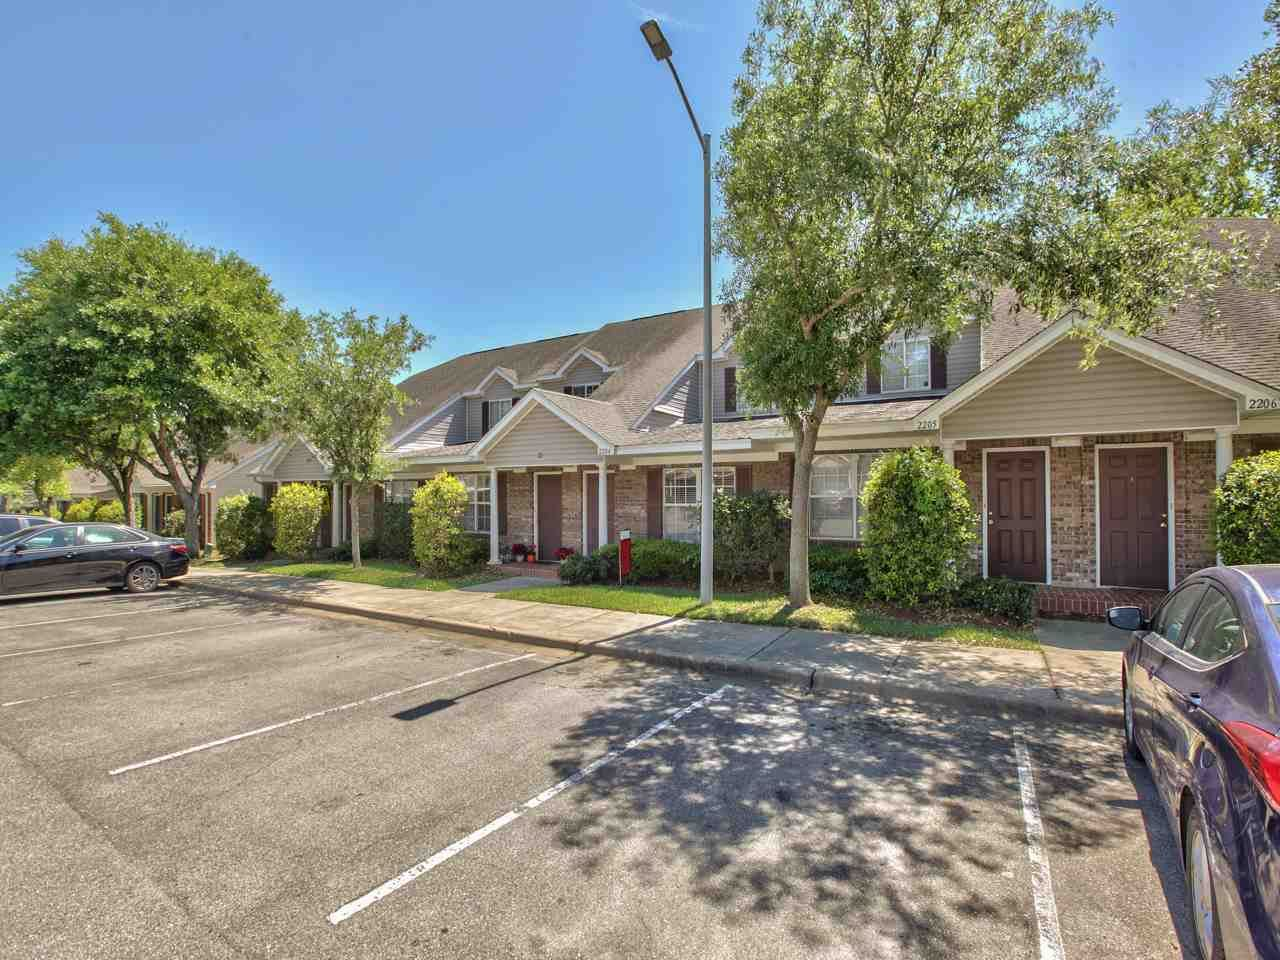 Photo of 2738 W Tharpe Street #2204, TALLAHASSEE, FL 32303 (MLS # 317423)